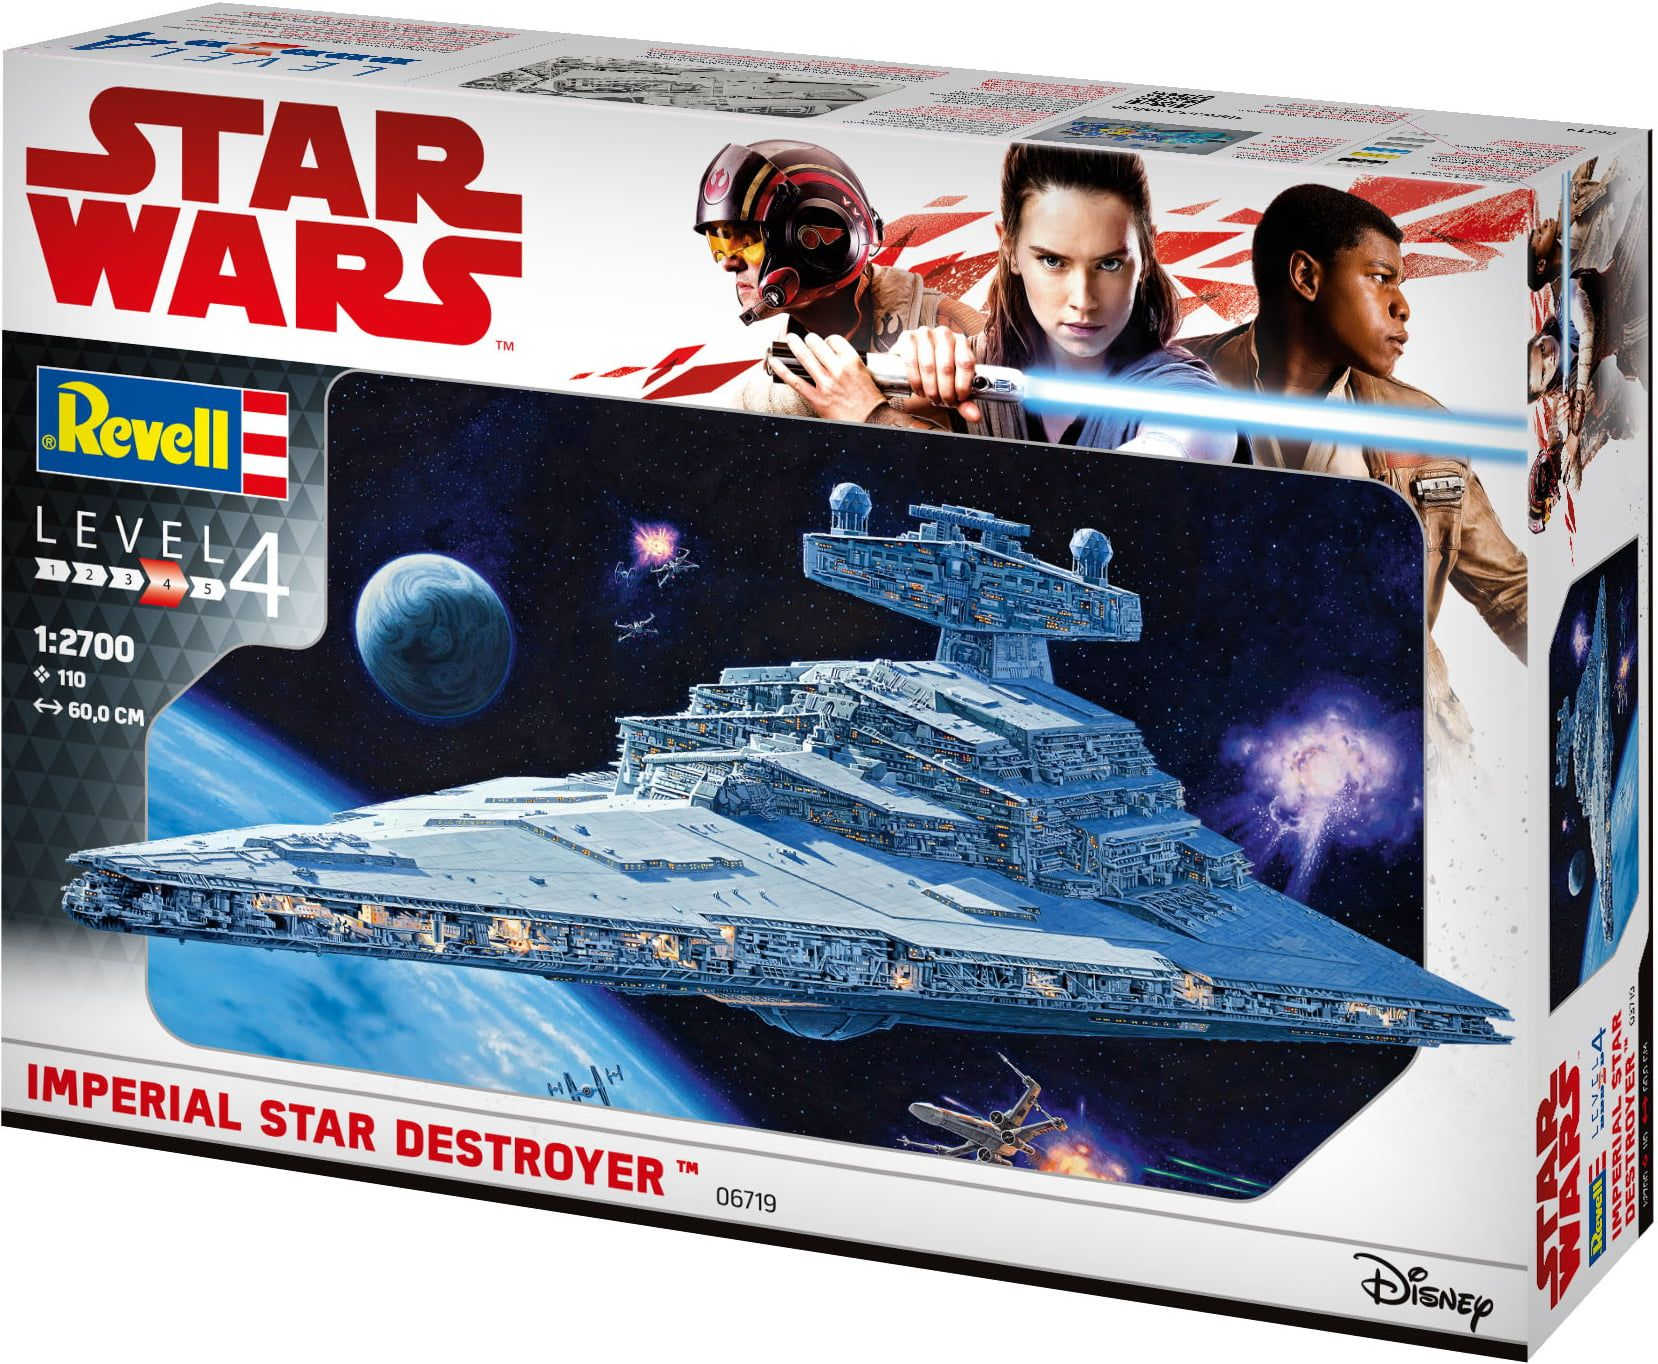 Revell Star Wars Imperial Star Destroyer Kit